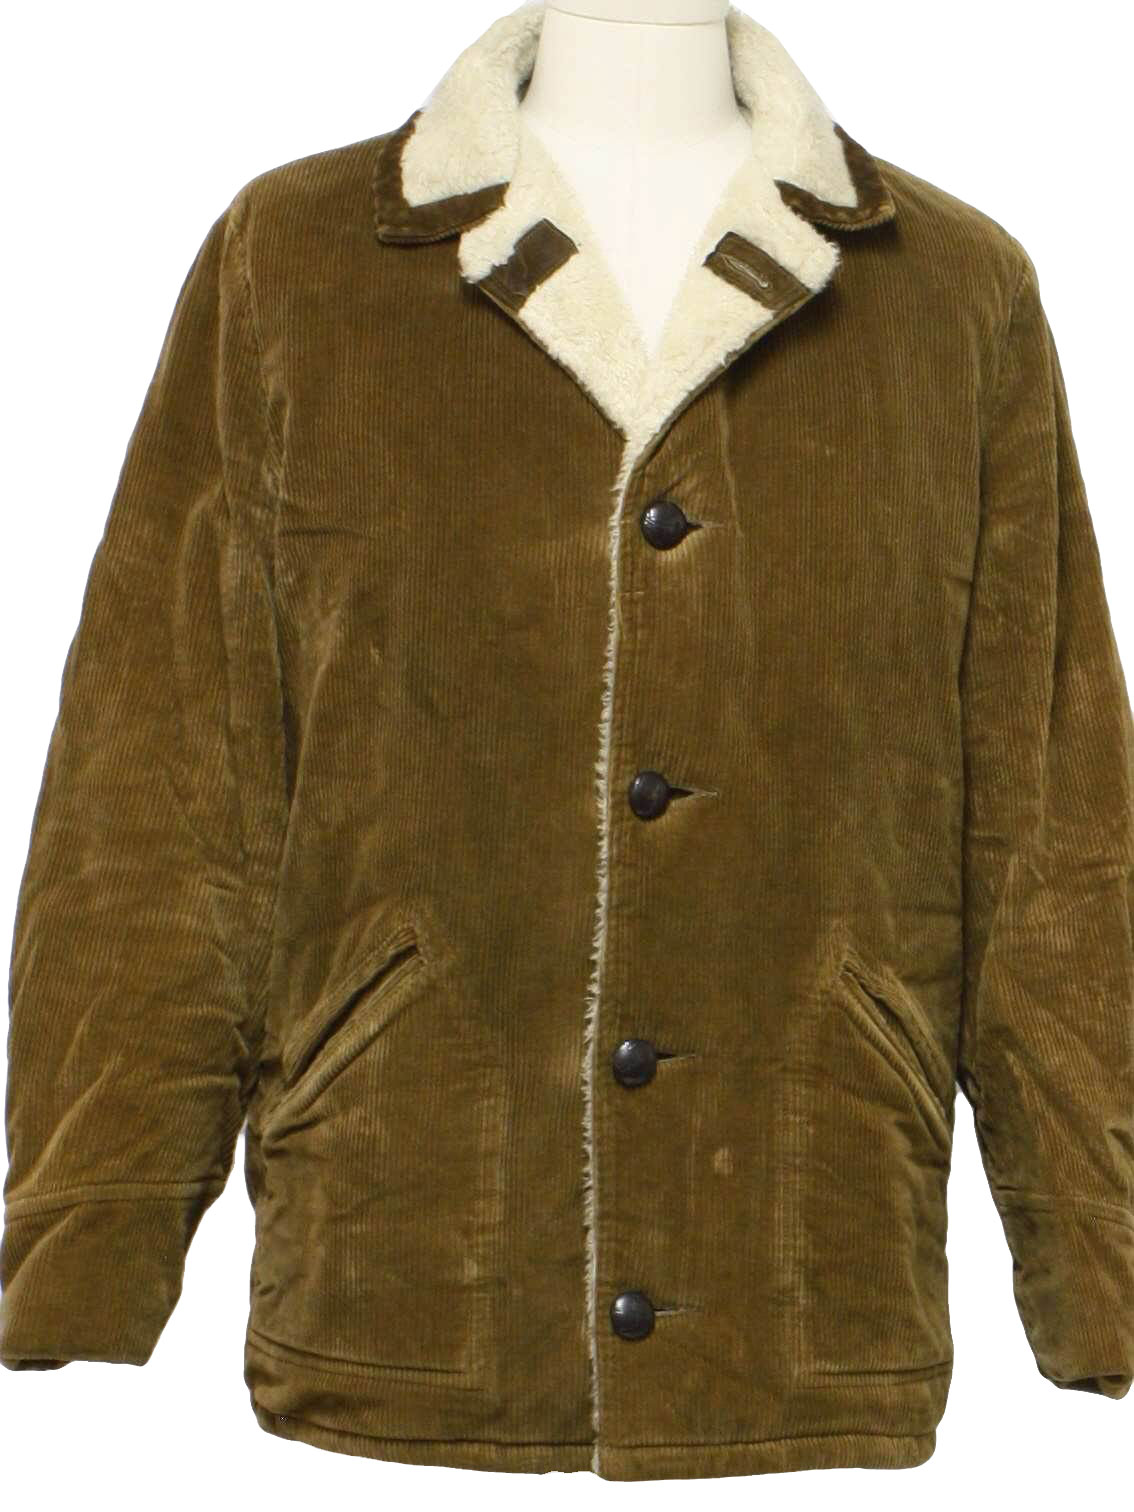 Mens jacket lined with fur -  Mens Brown Faux Leather Button Front Longsleeve Wide Wale Cotton Corduroy Car Coat With Fold Over Notched Collar Off White Acrylic Faux Fur Lining